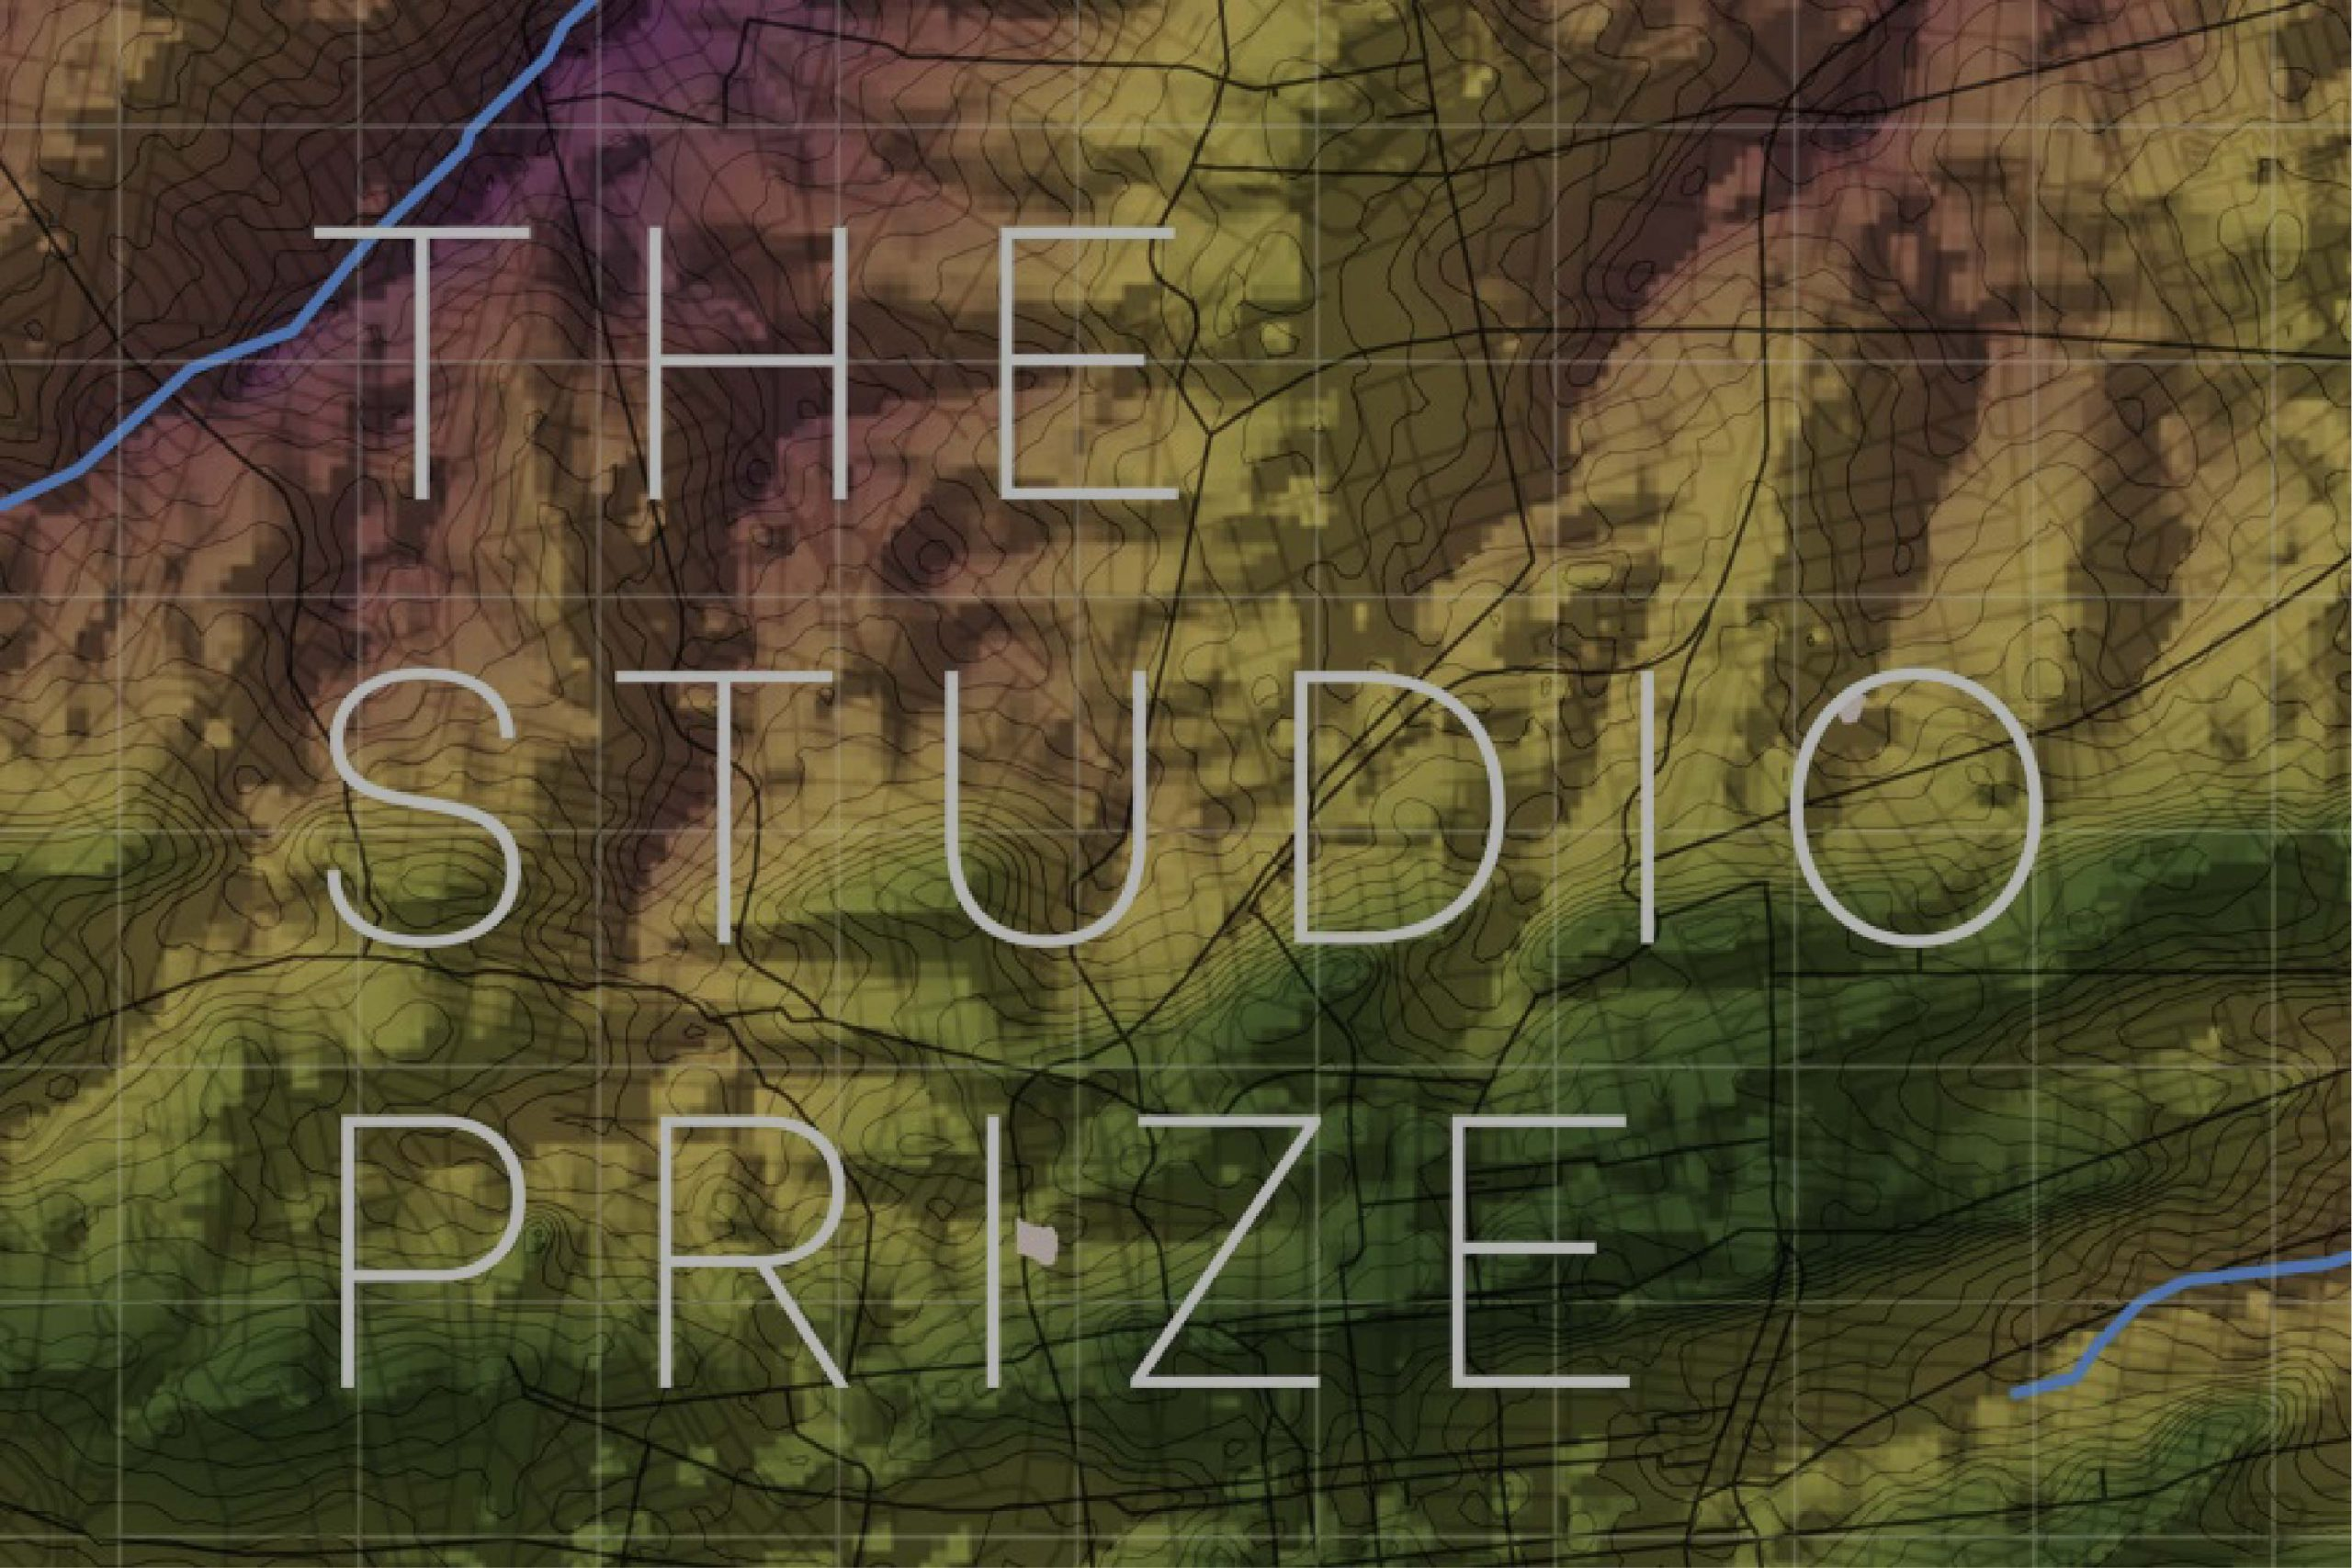 Deep Dust | The Killing Dark wins Studio Prize from Architect Magazine